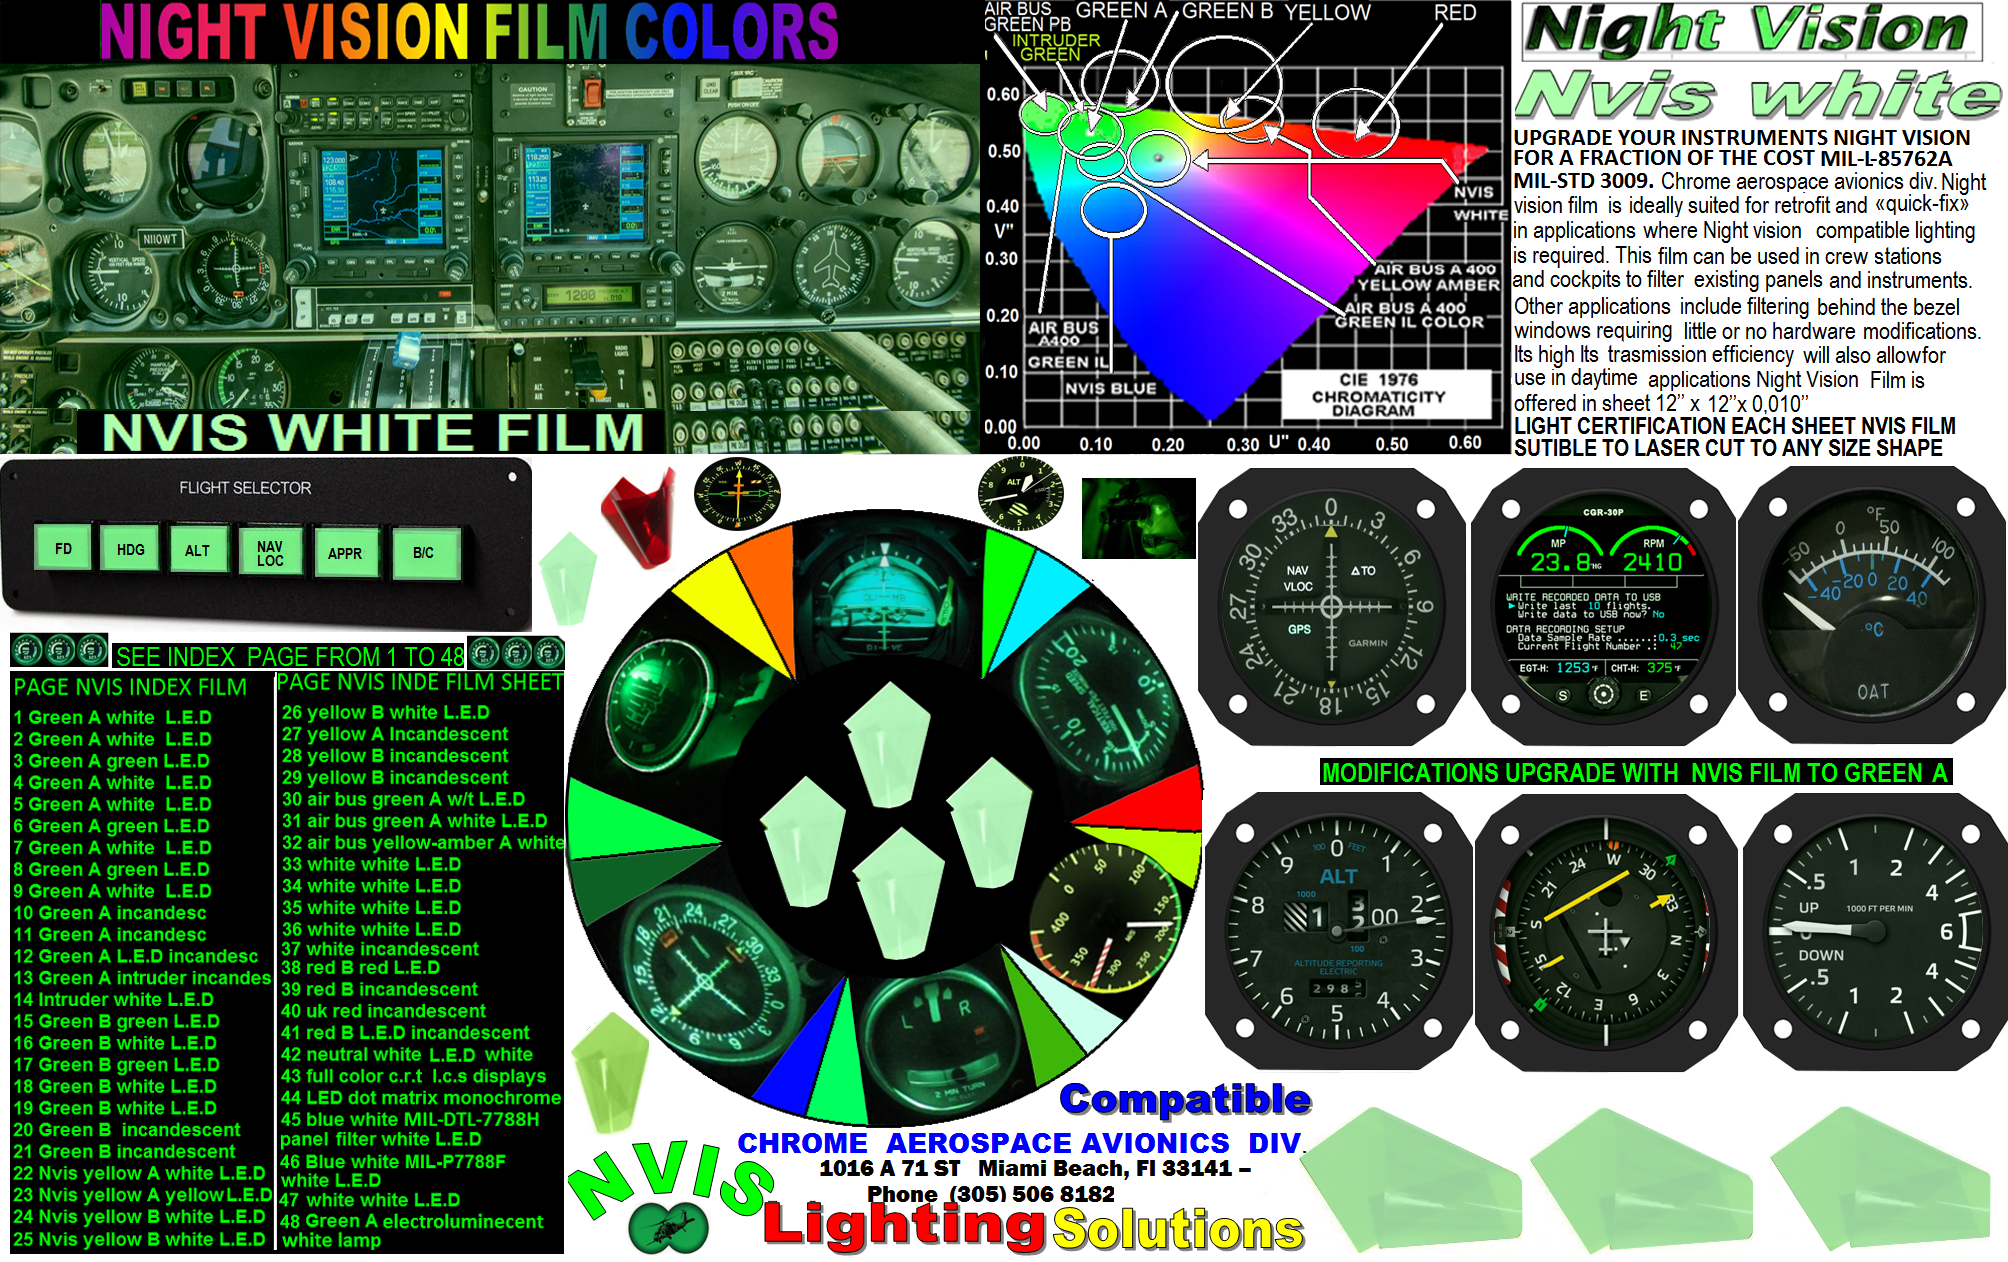 12 NVIS WHITE  FILM UPGRADE CONVERSION INSTRUMENTS  4-24-20.png